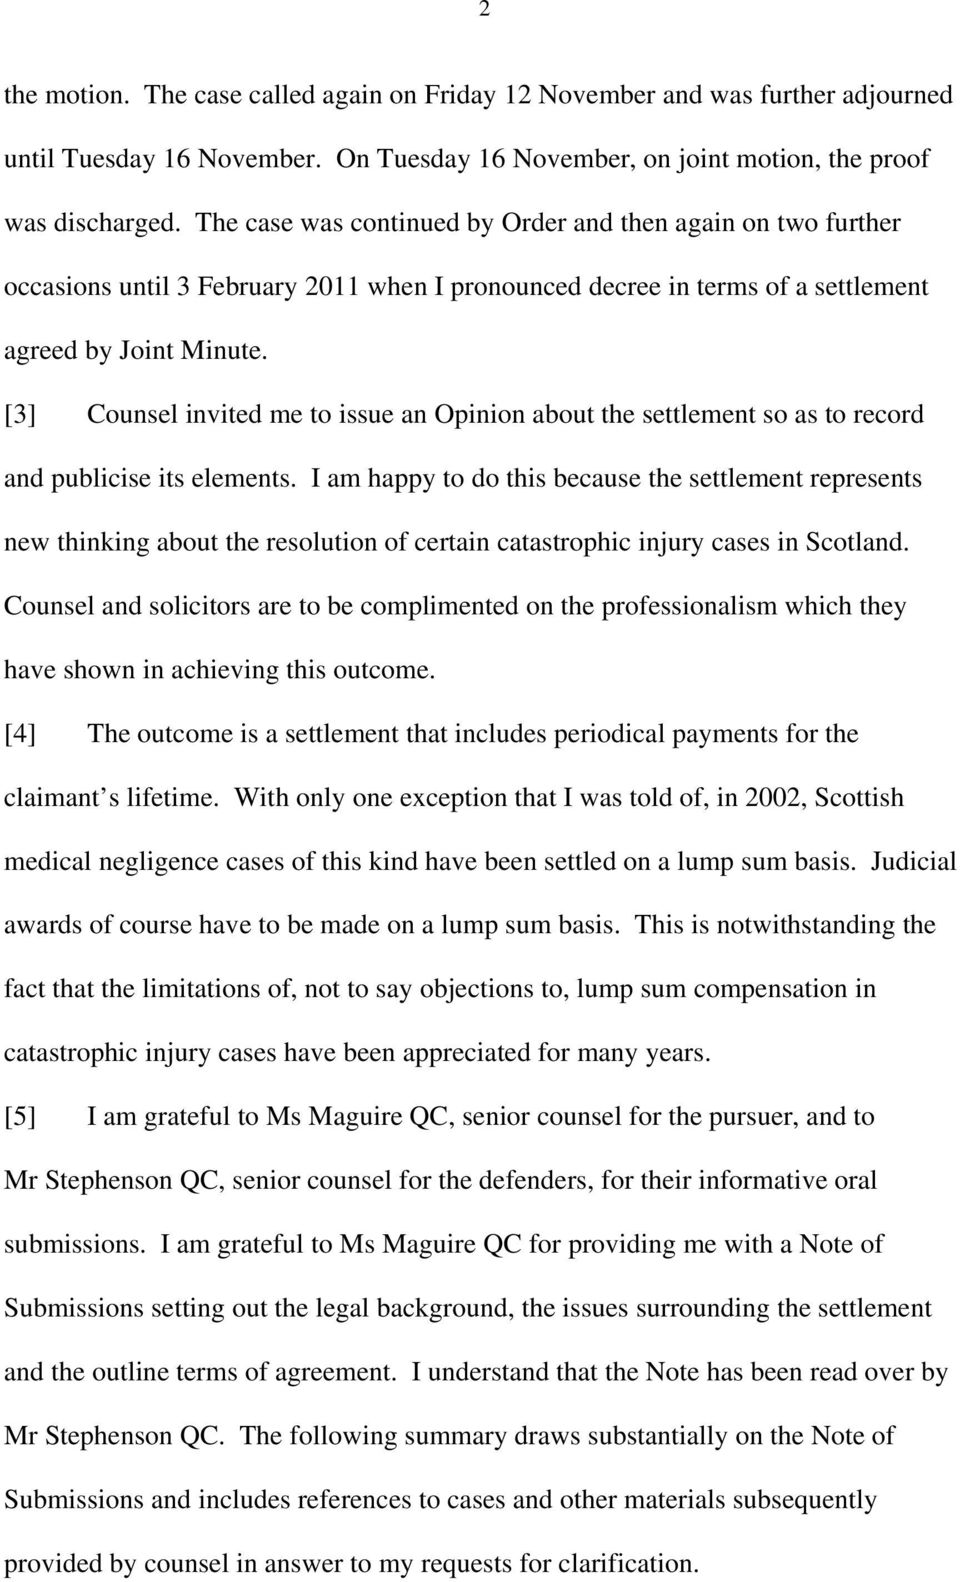 [3] Counsel invited me to issue an Opinion about the settlement so as to record and publicise its elements.